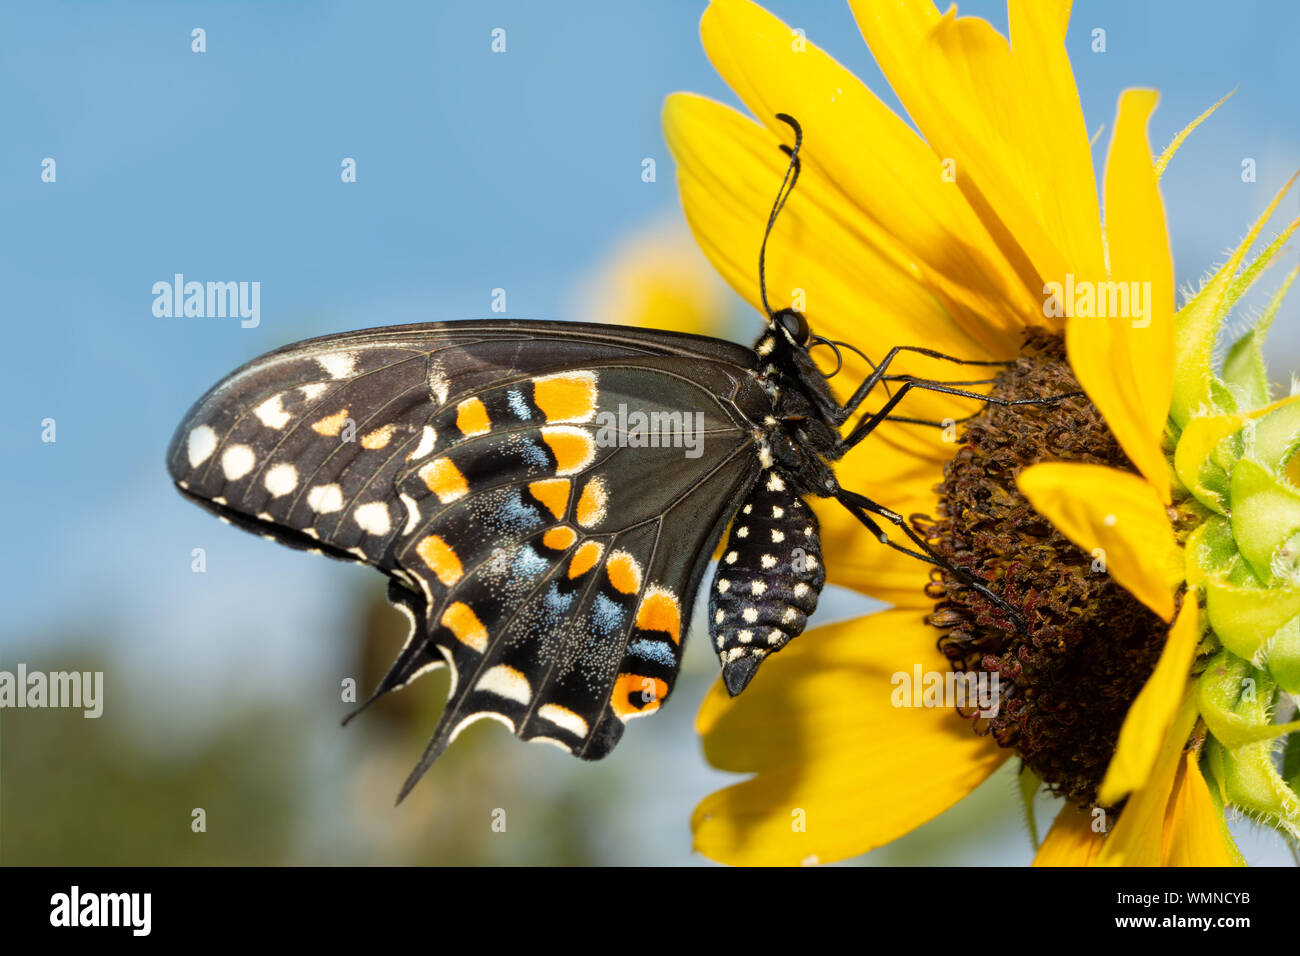 Black Swallowtail butterfly on a native wild Sunflower against blue sky Stock Photo